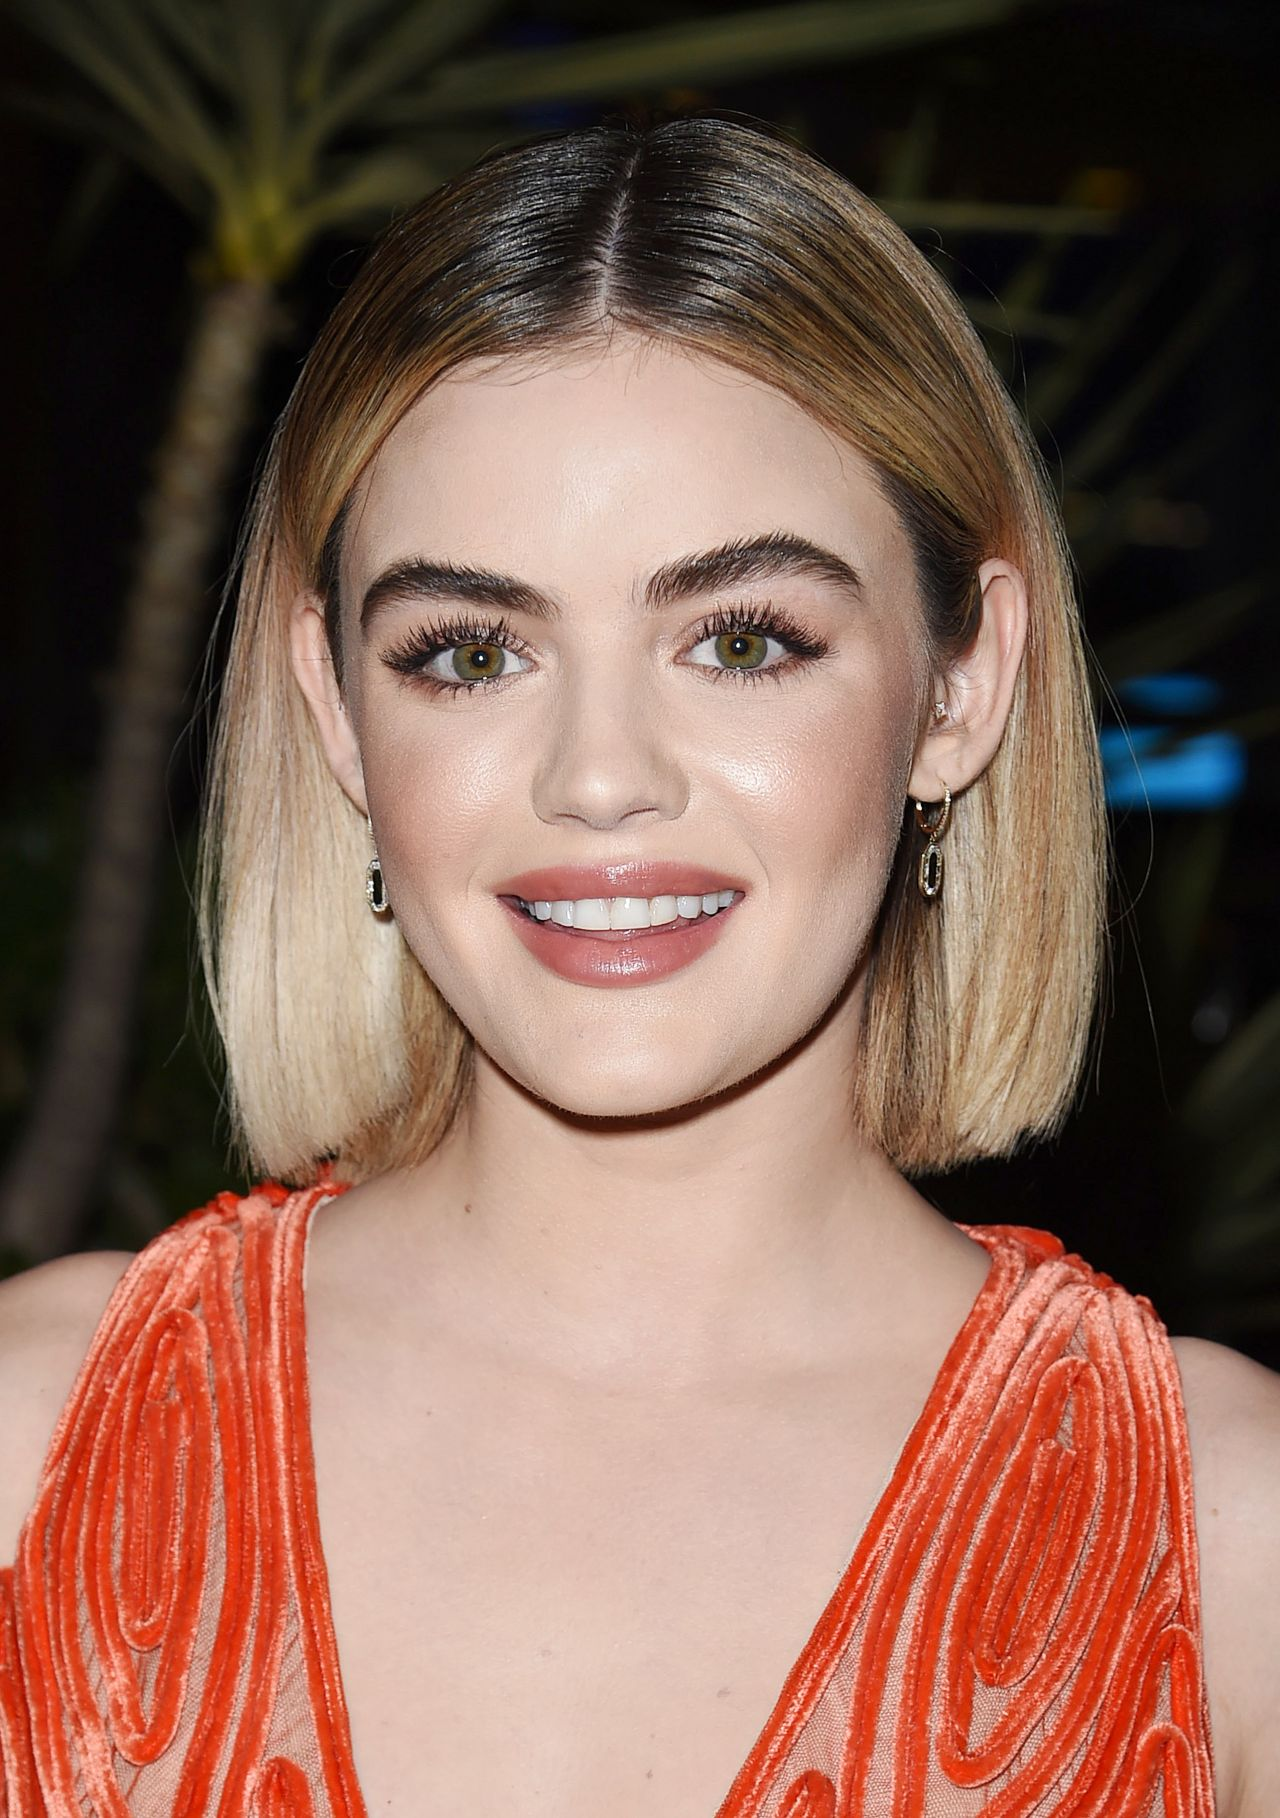 Lucy Hale born June 14, 1989 (age 29) nudes (23 gallery), young Tits, YouTube, underwear 2019